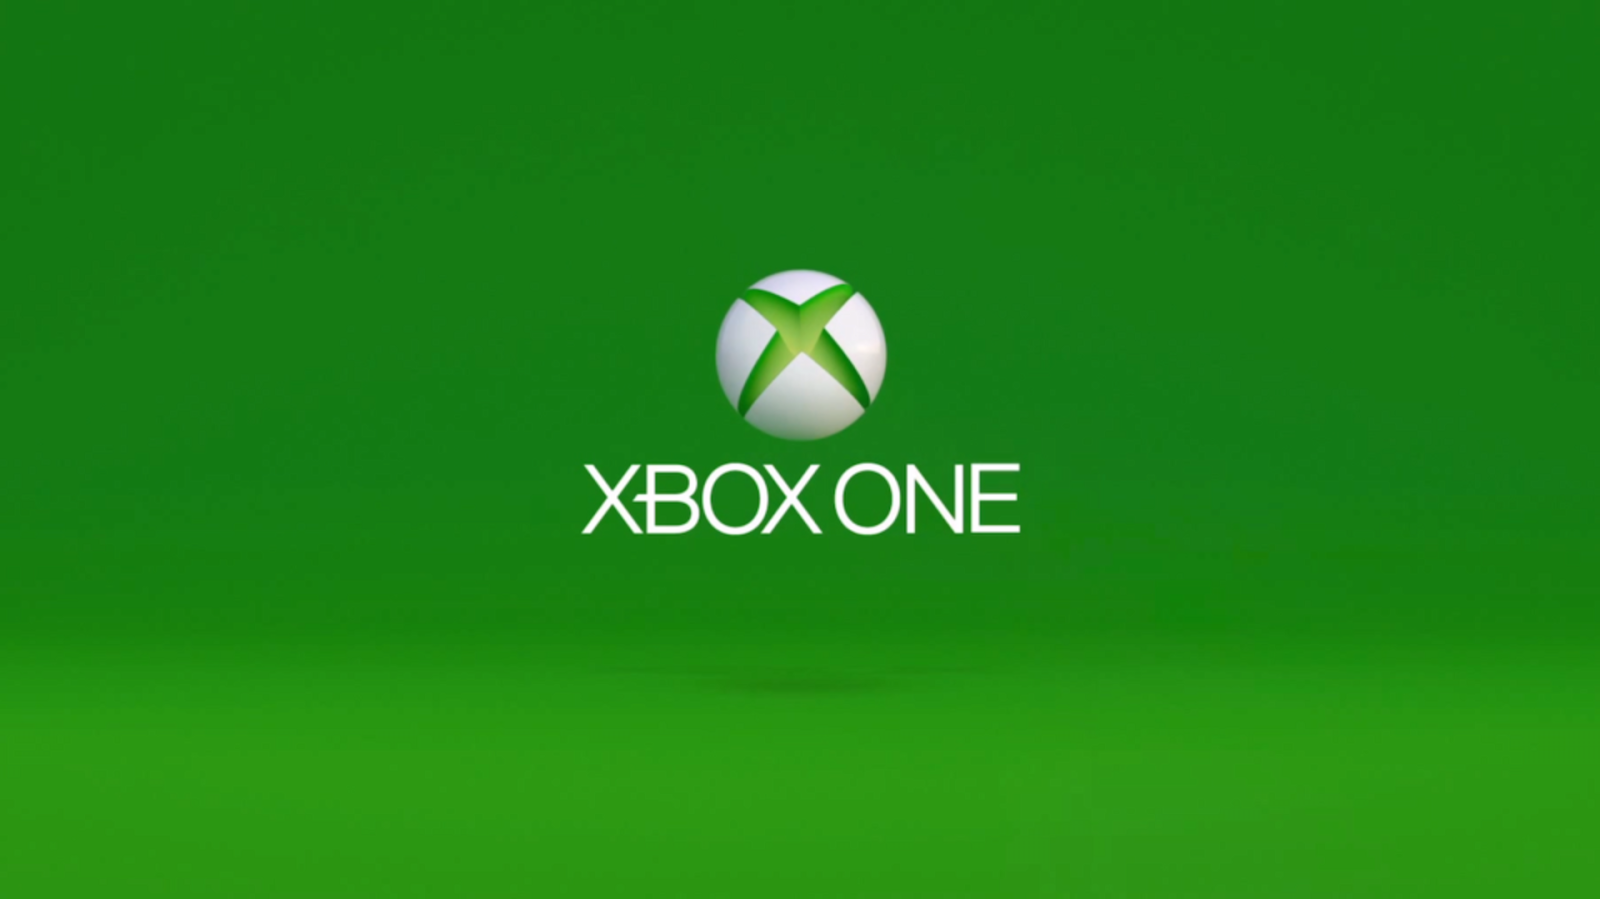 The Xbox One Provides a Peek at the Connected Home of the Future